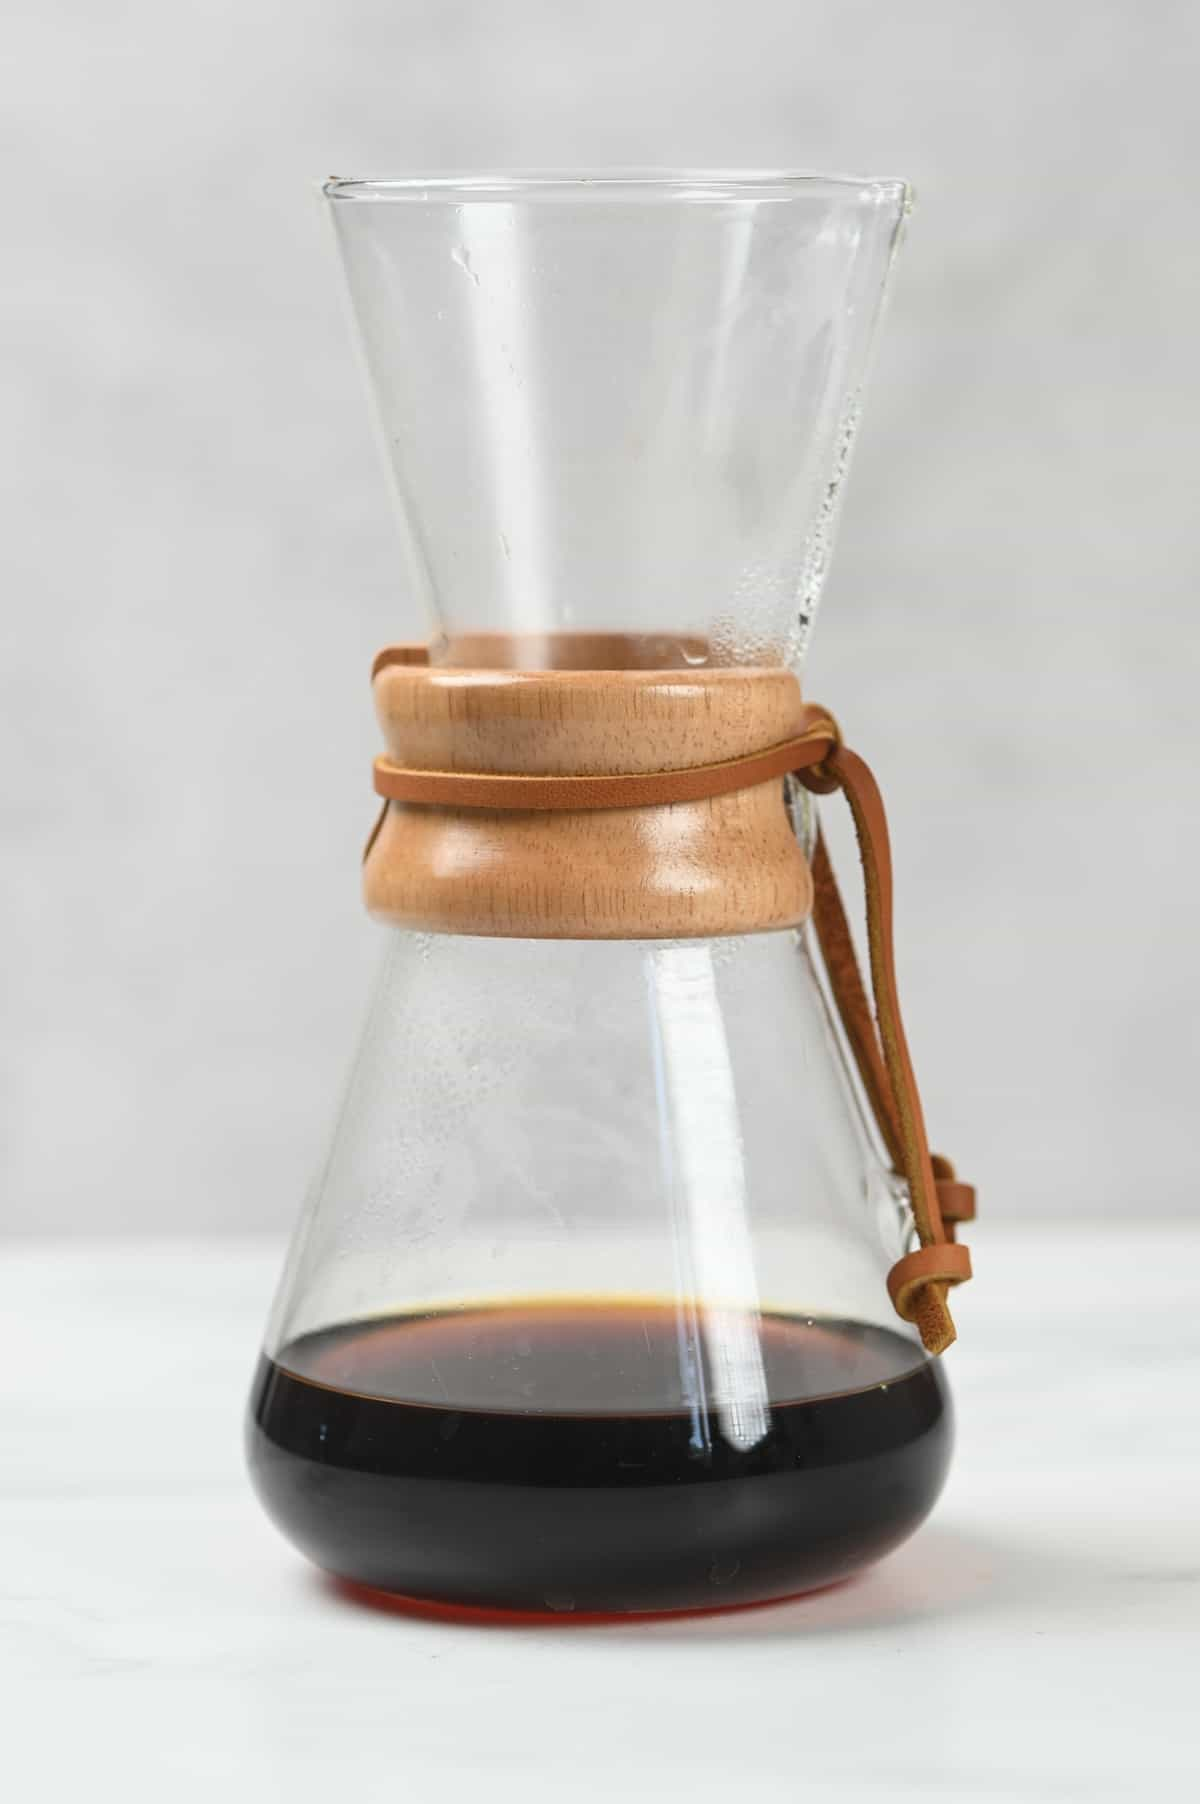 Coffee dripper with some coffee